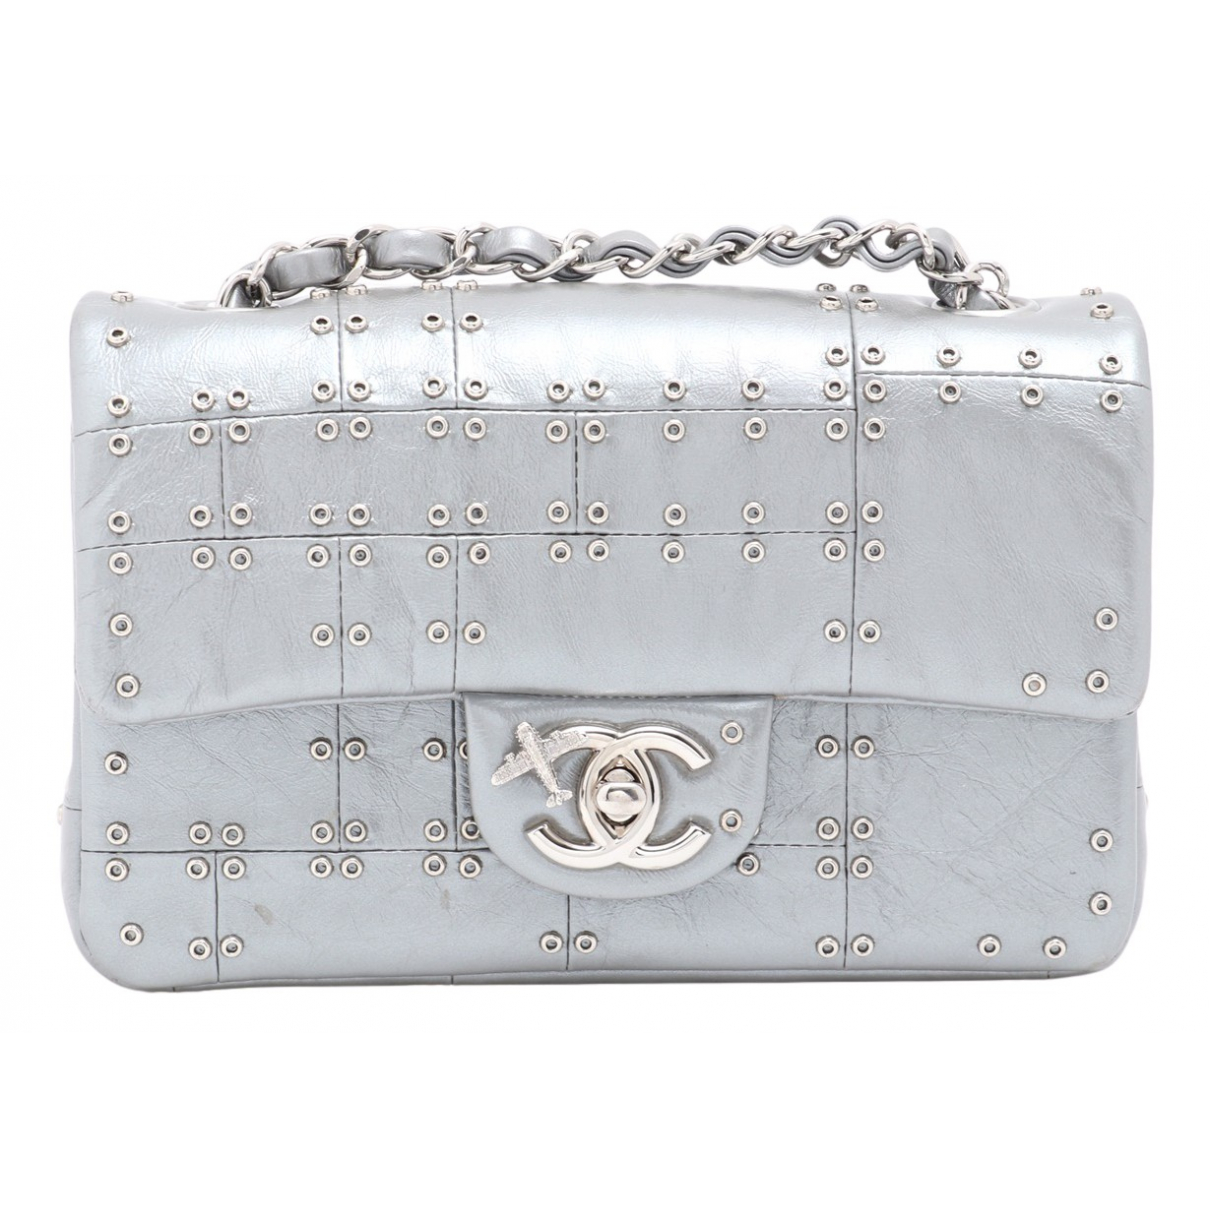 Chanel Timeless/Classique Silver Leather handbag for Women \N